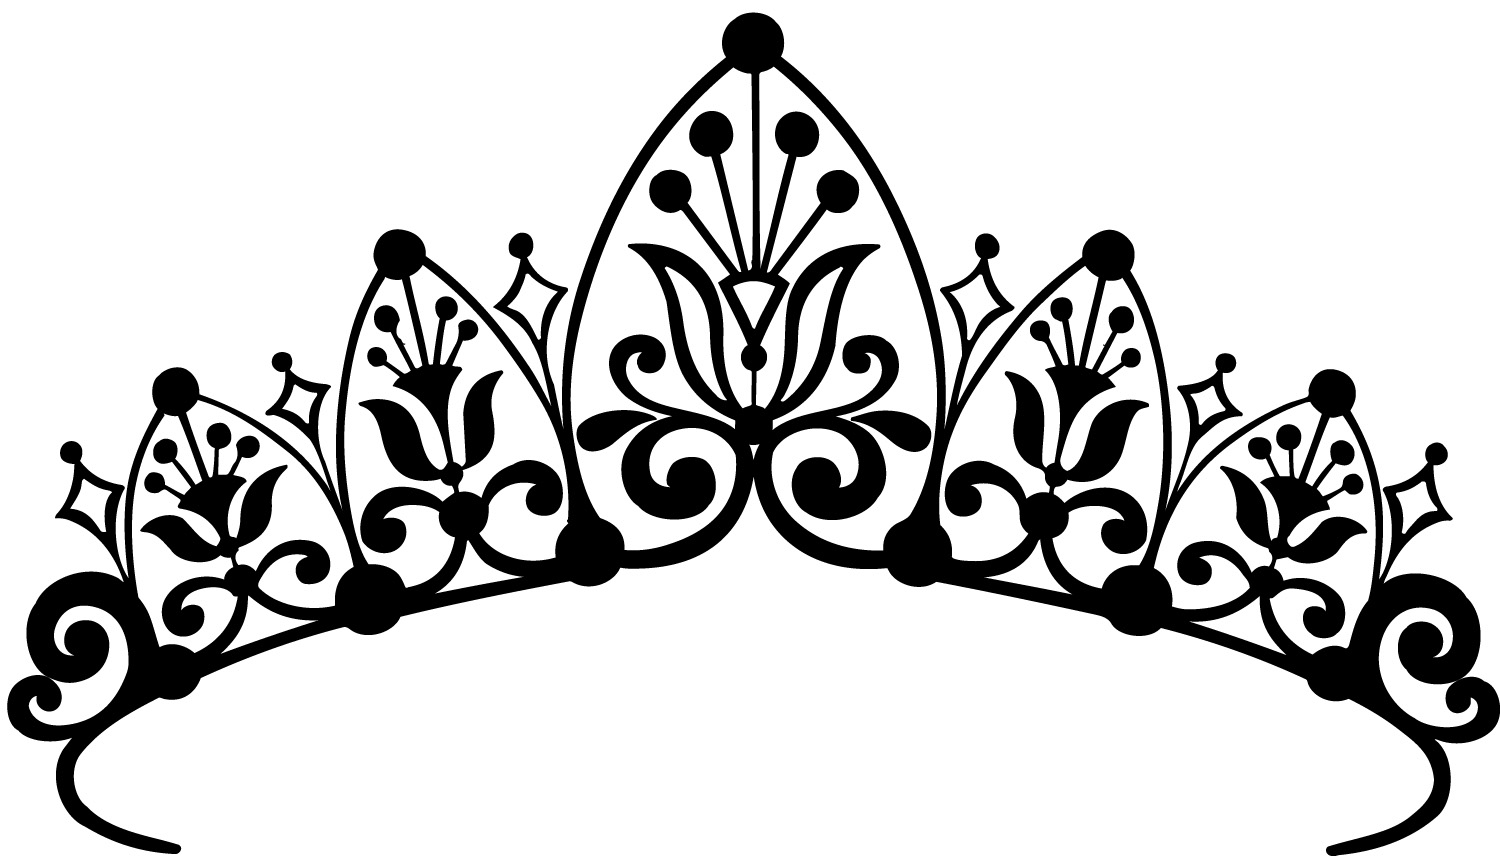 Queen Crown Drawing | Free download best Queen Crown Drawing on ...